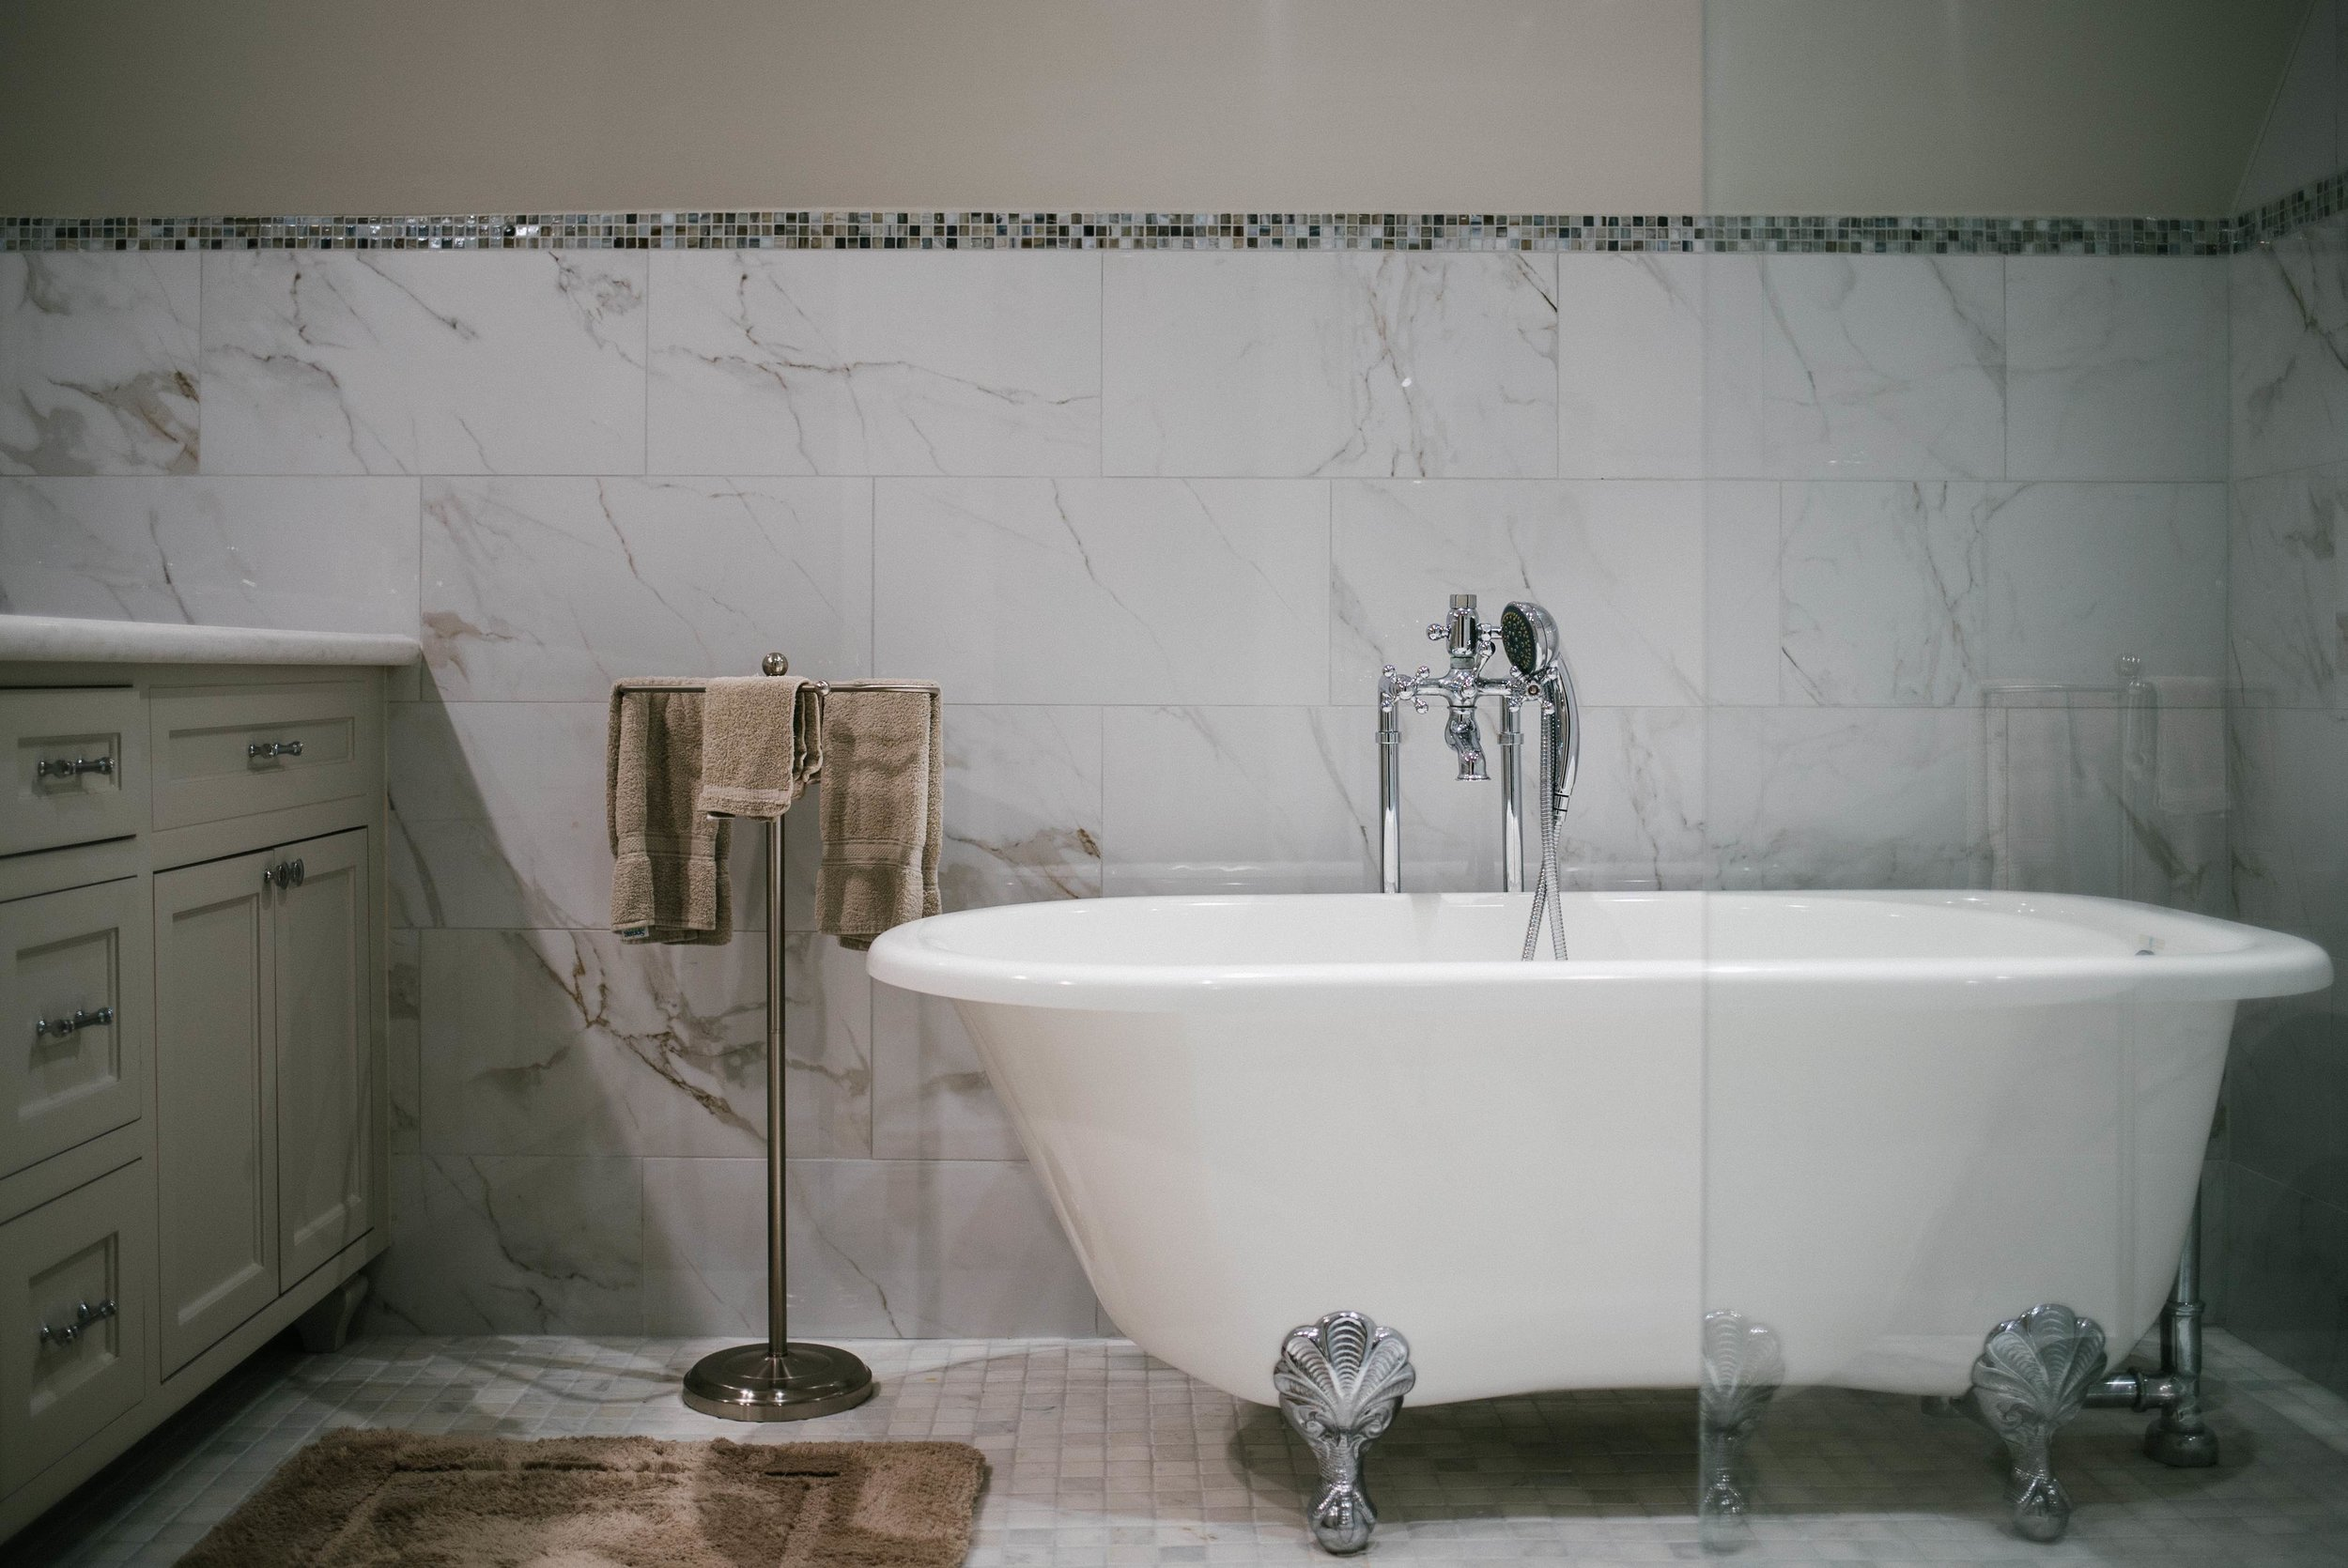 Stunning master bathroom remodel! Clawfoot bathtub, frameless walk in shower, intricate tile border, grey and beige tile, shaker style cabinets, paint.